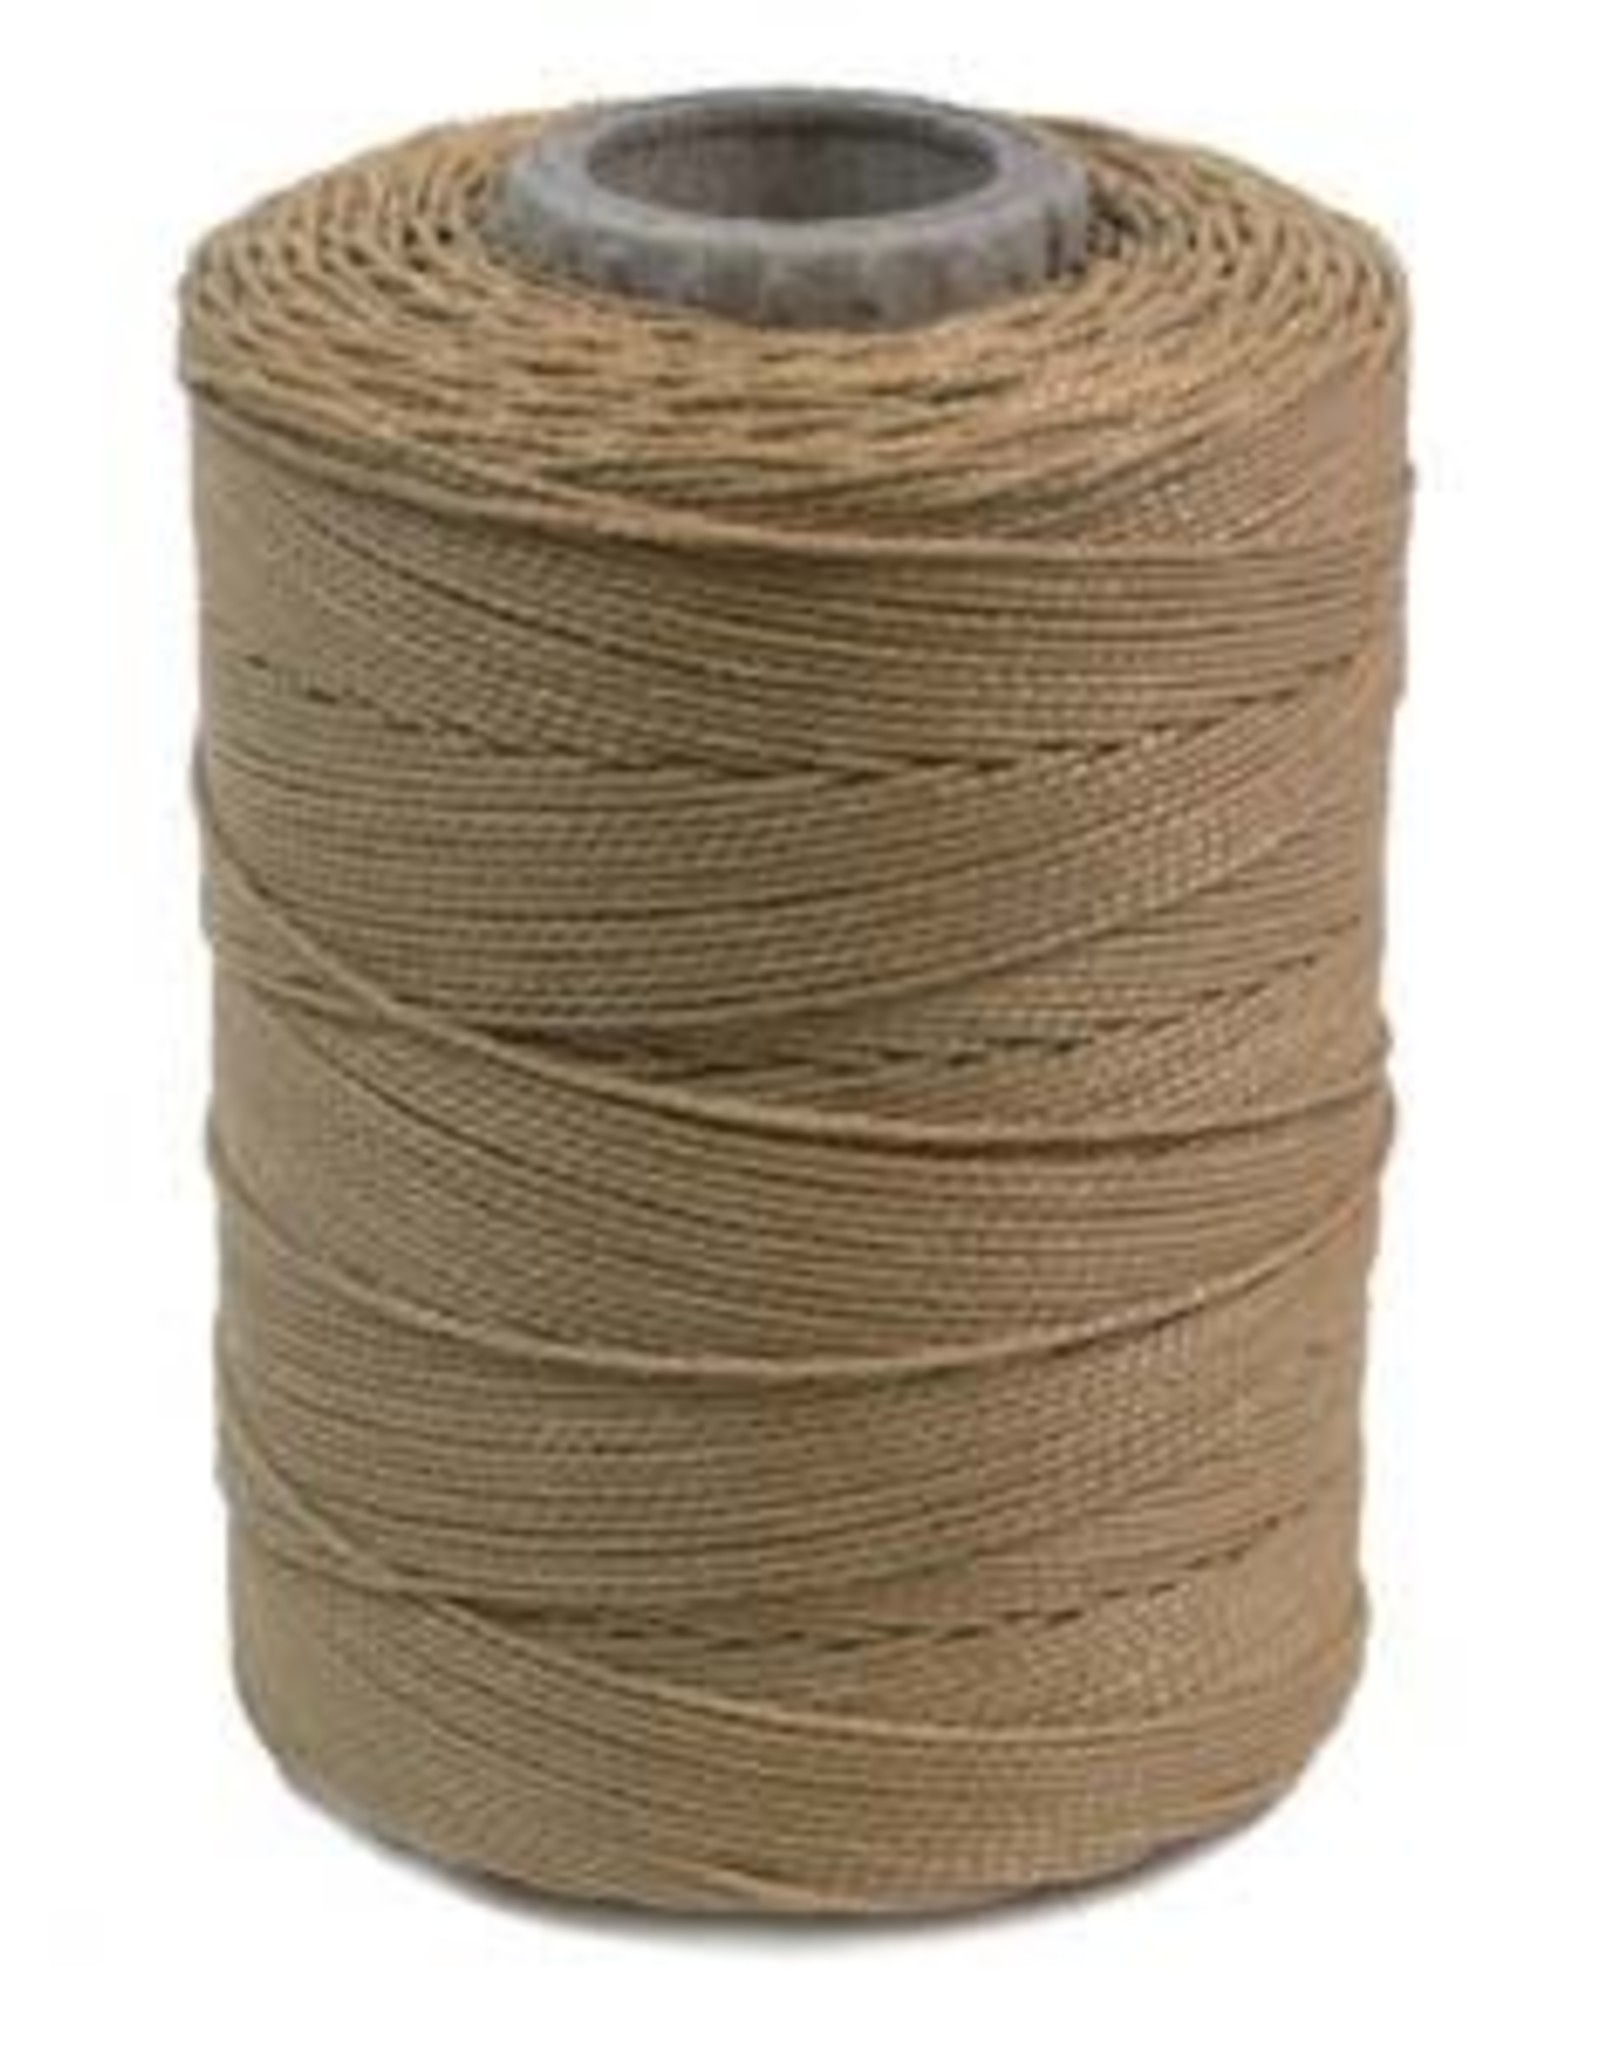 Wax Polyester Cord 3ply Beige 116 yds